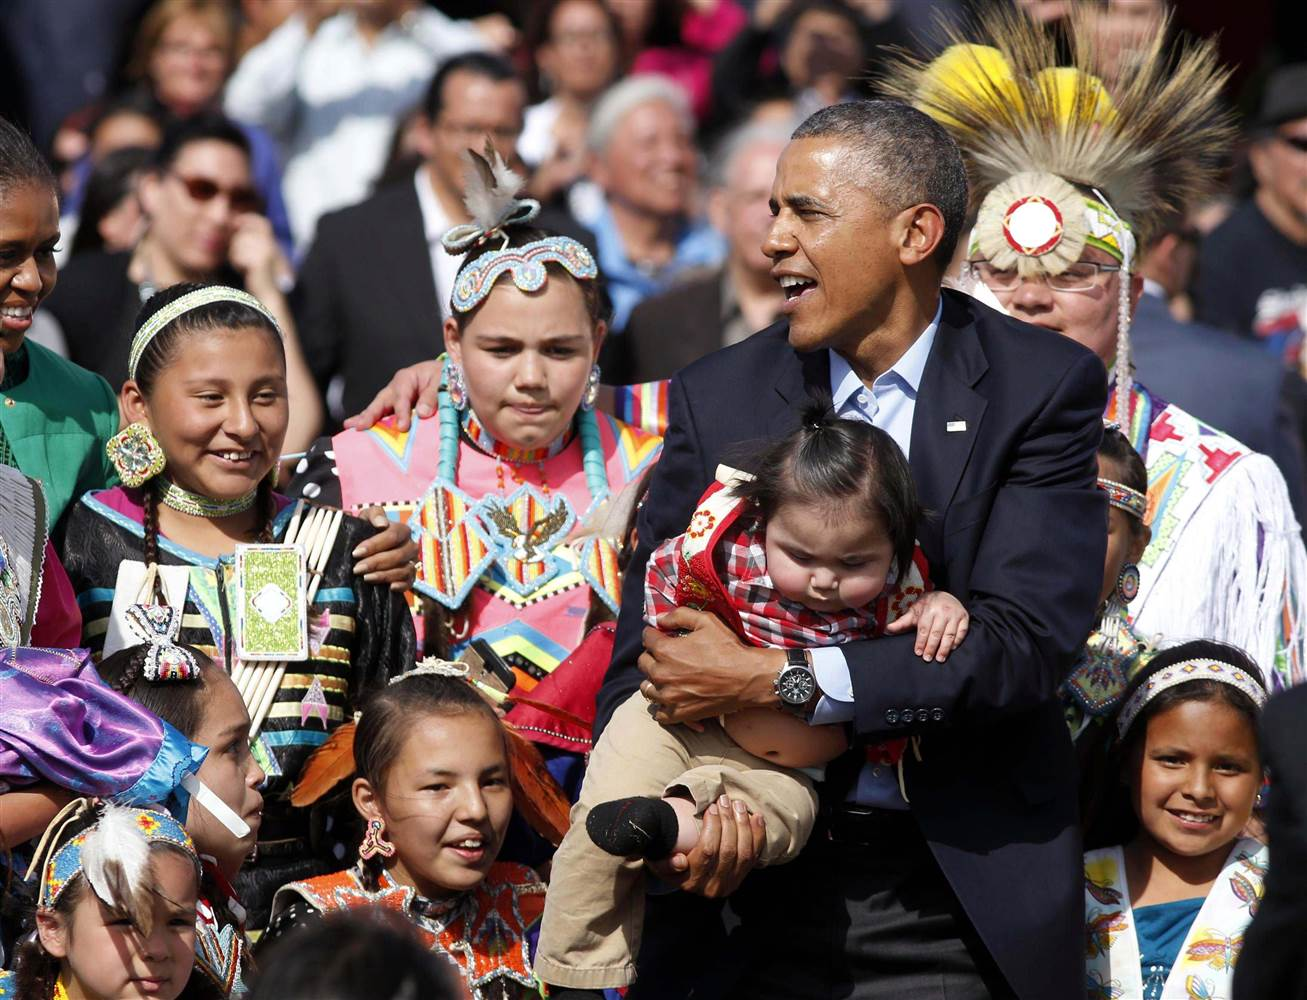 Obama with Native American Indians